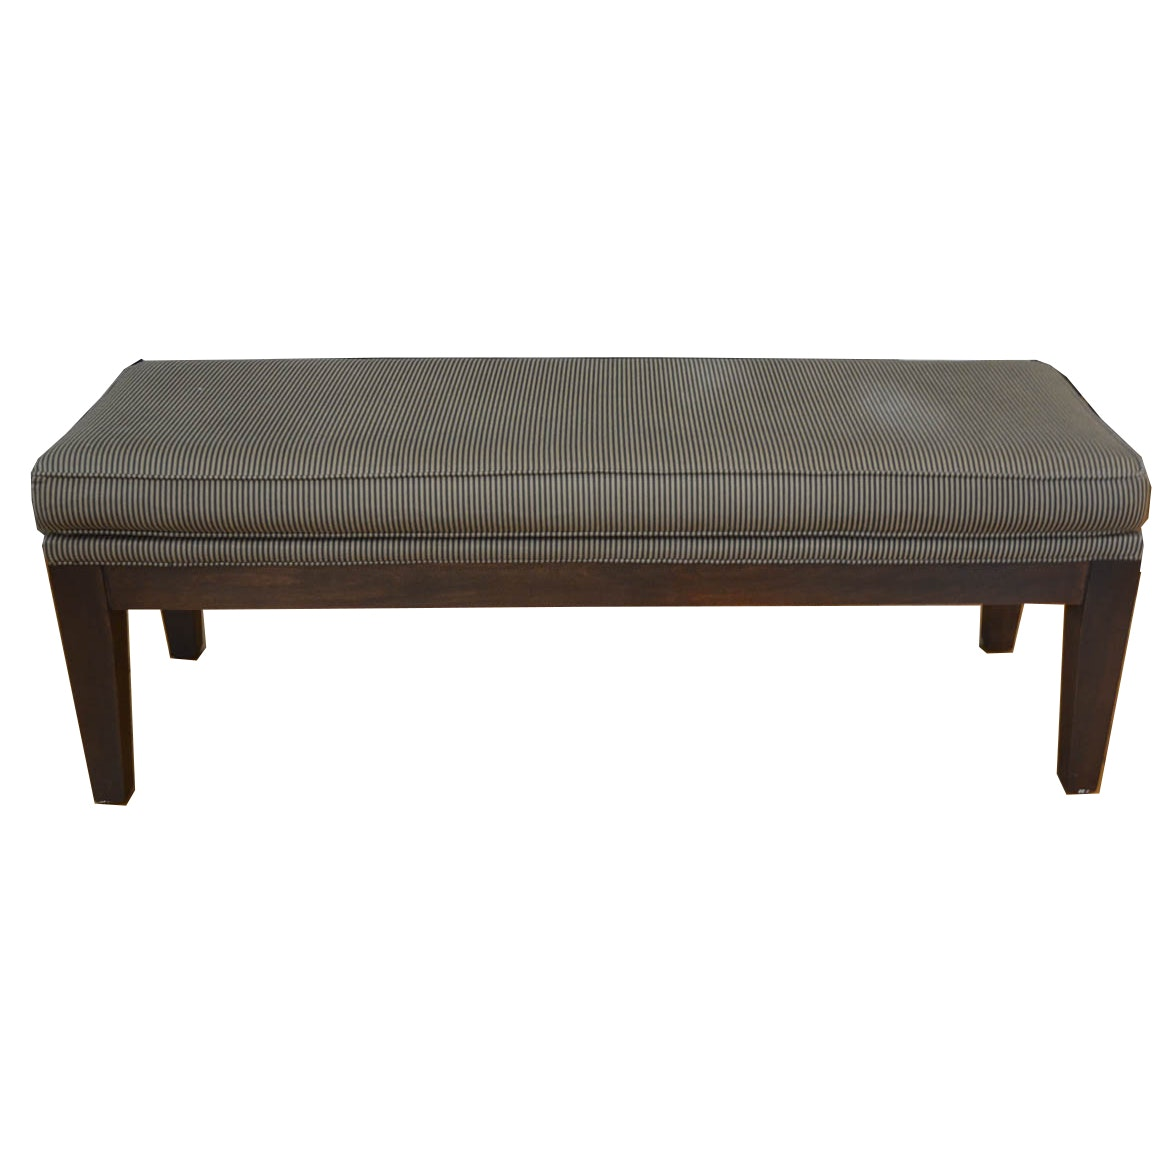 Wooden Upholstered Bench